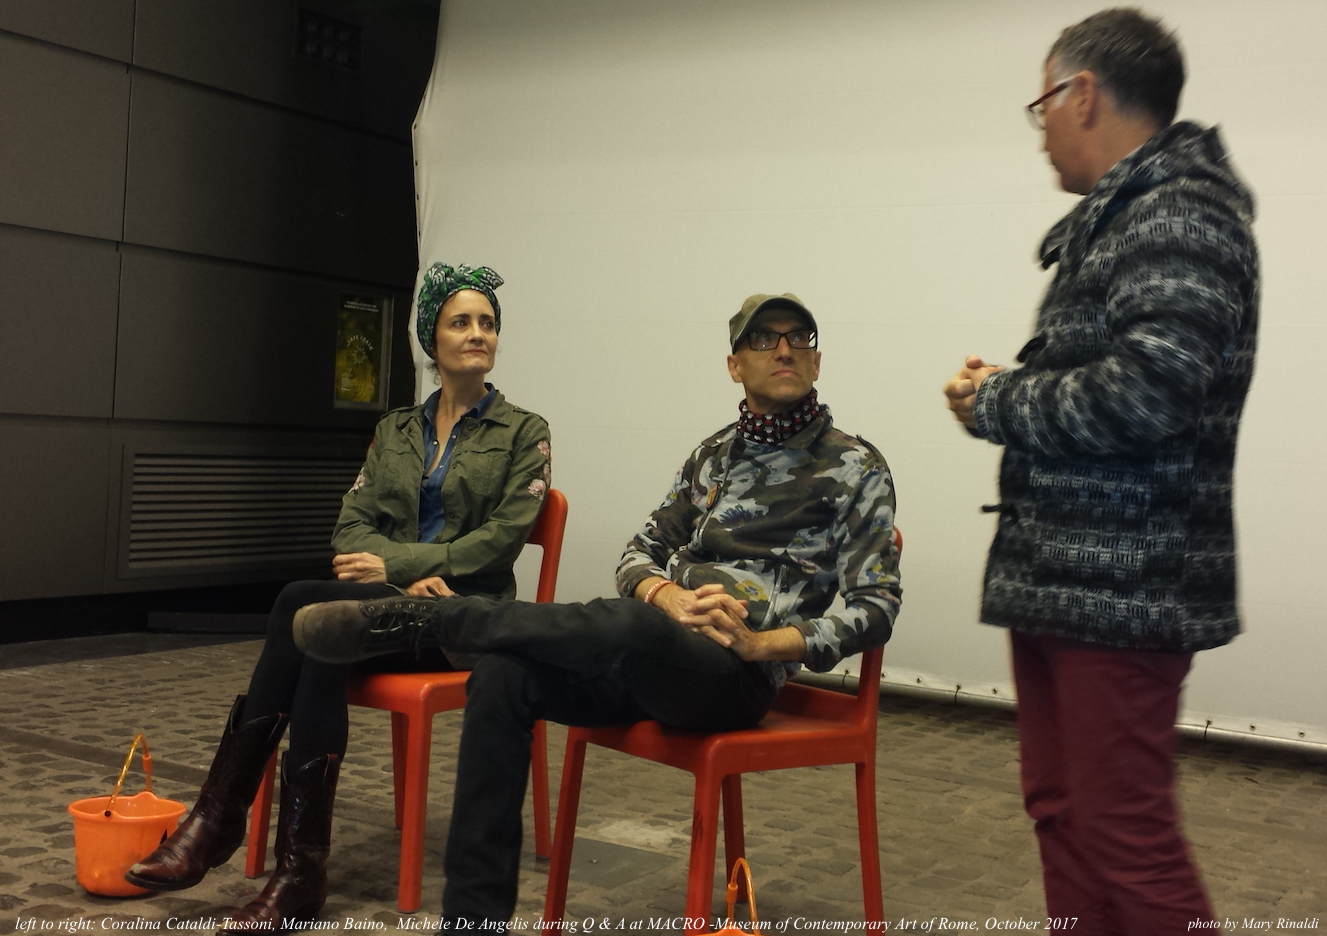 left to right: Coralina Cataldi-Tasssoni, Mariano Baino and Michele De Angelis during  Q & A at MACRO